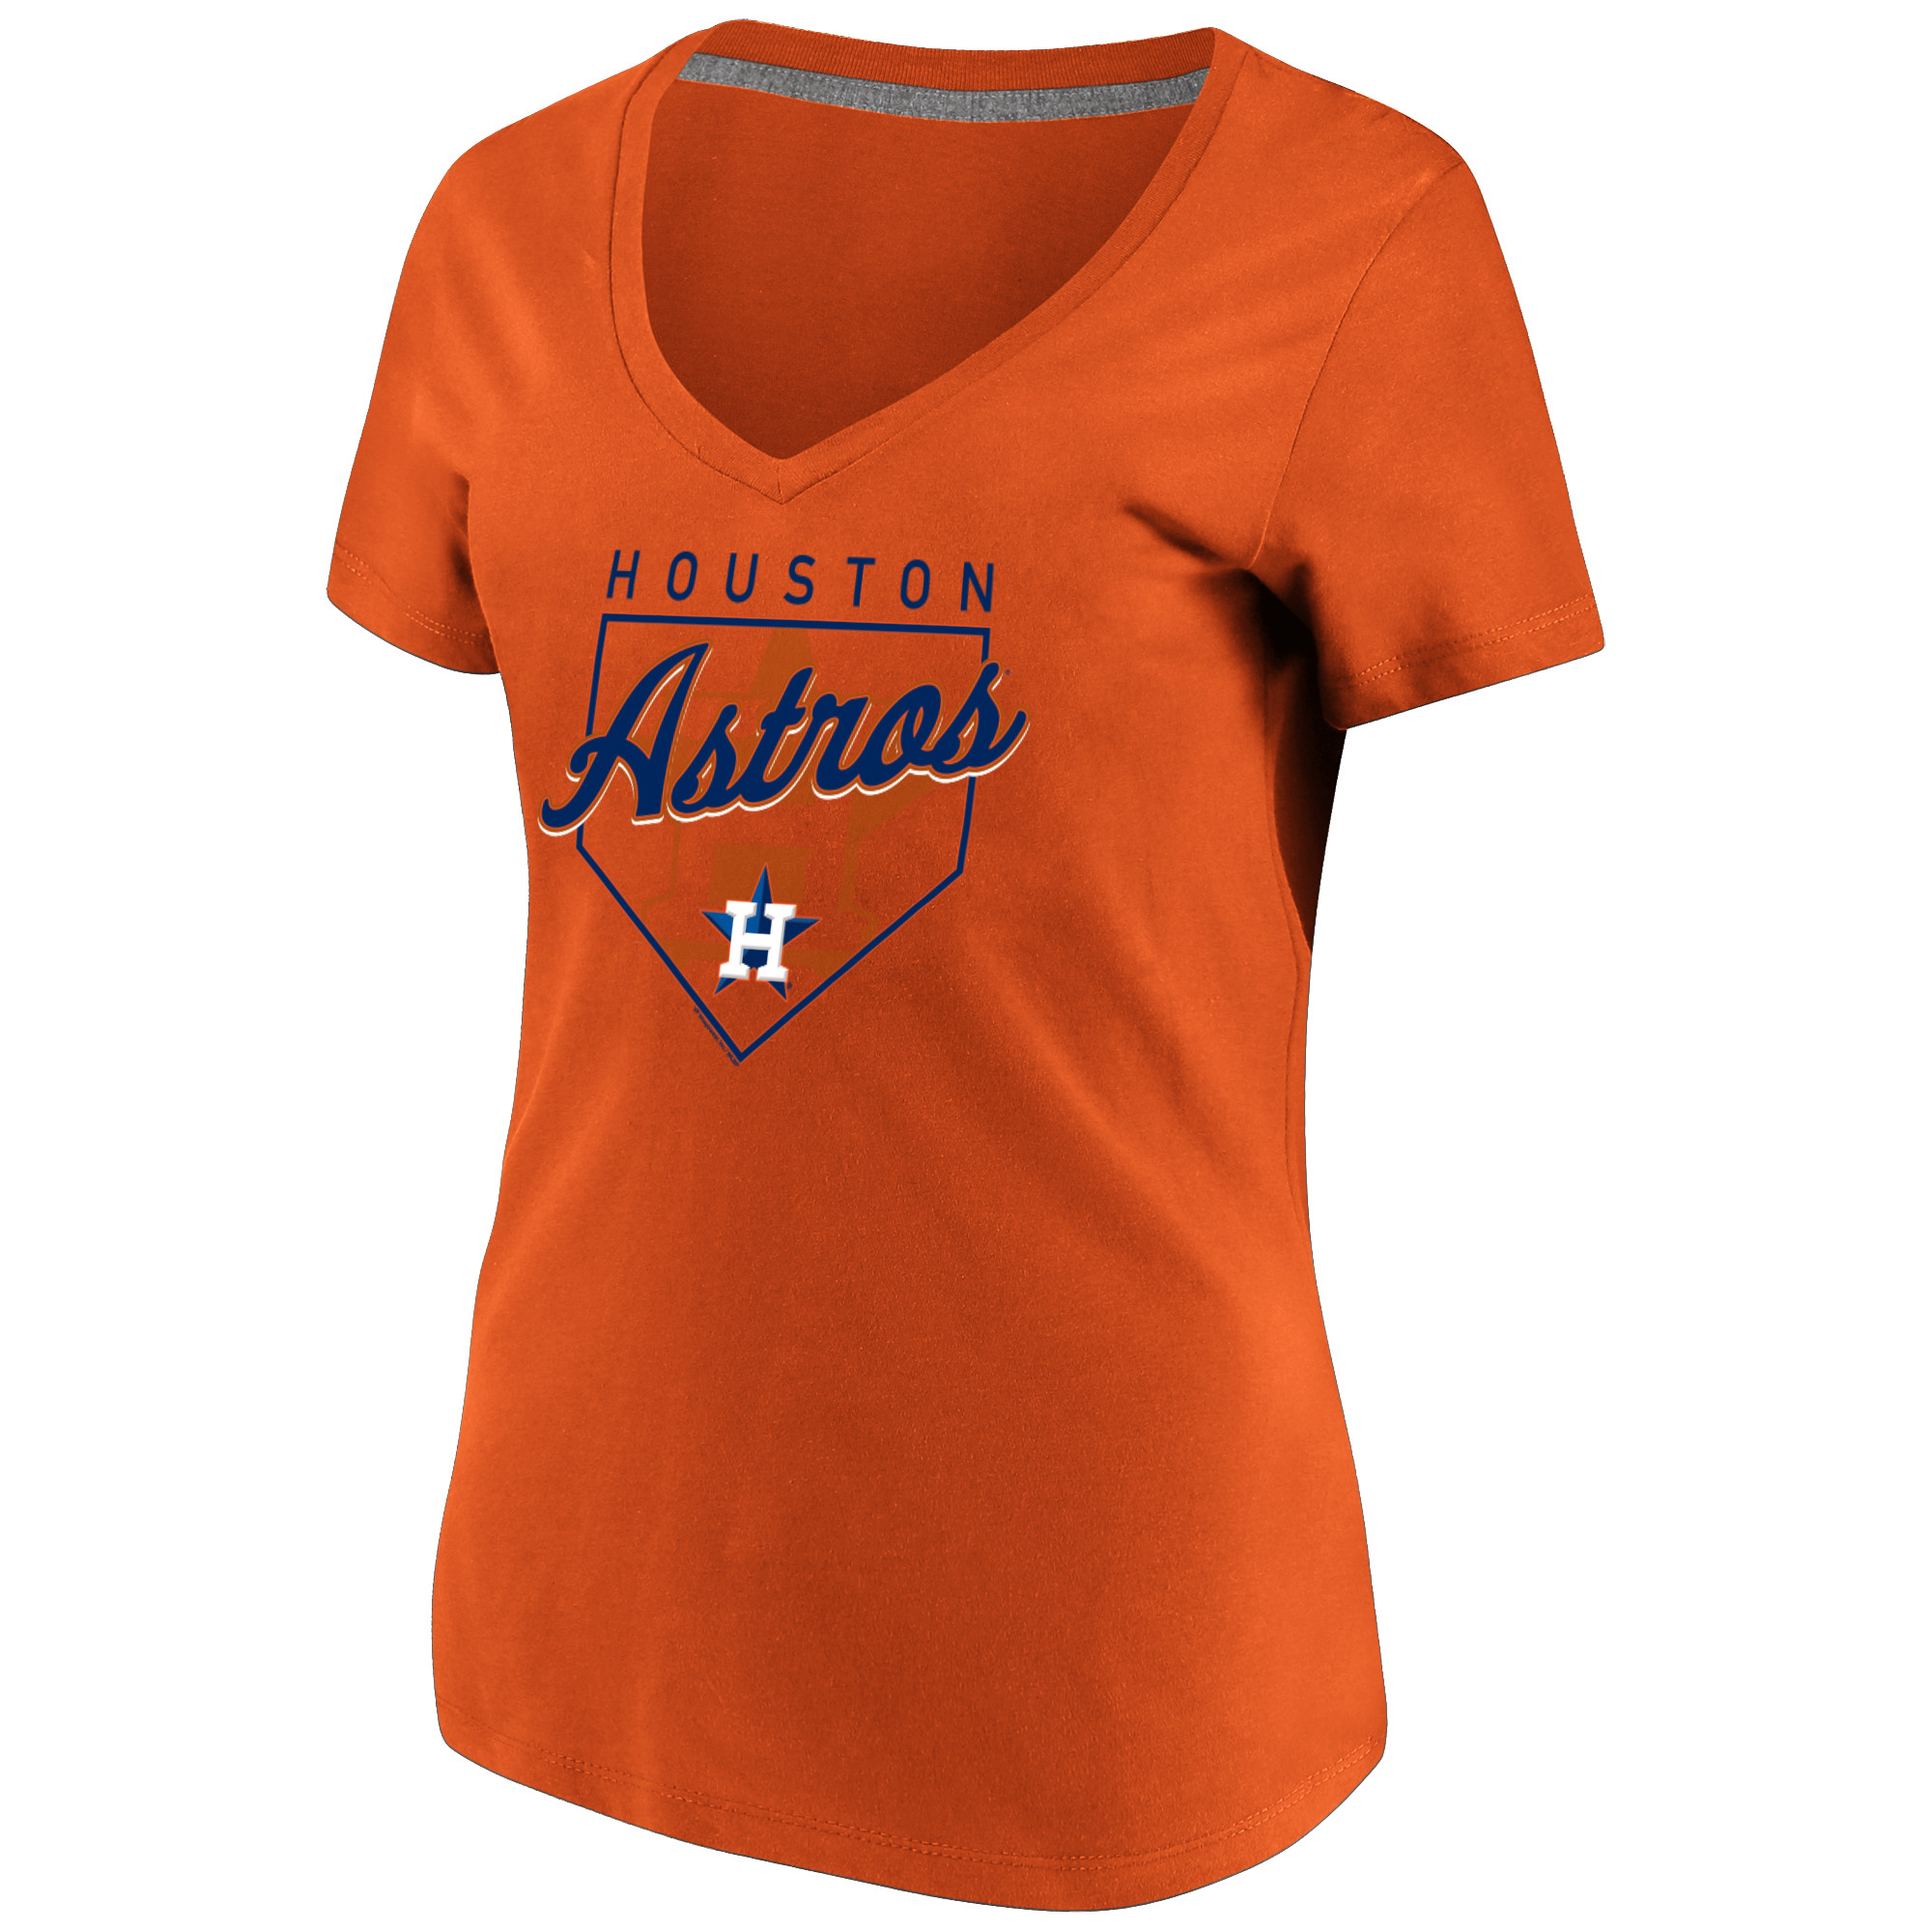 Women's Majestic Orange Houston Astros Cling to the Lead V-Neck T-Shirt